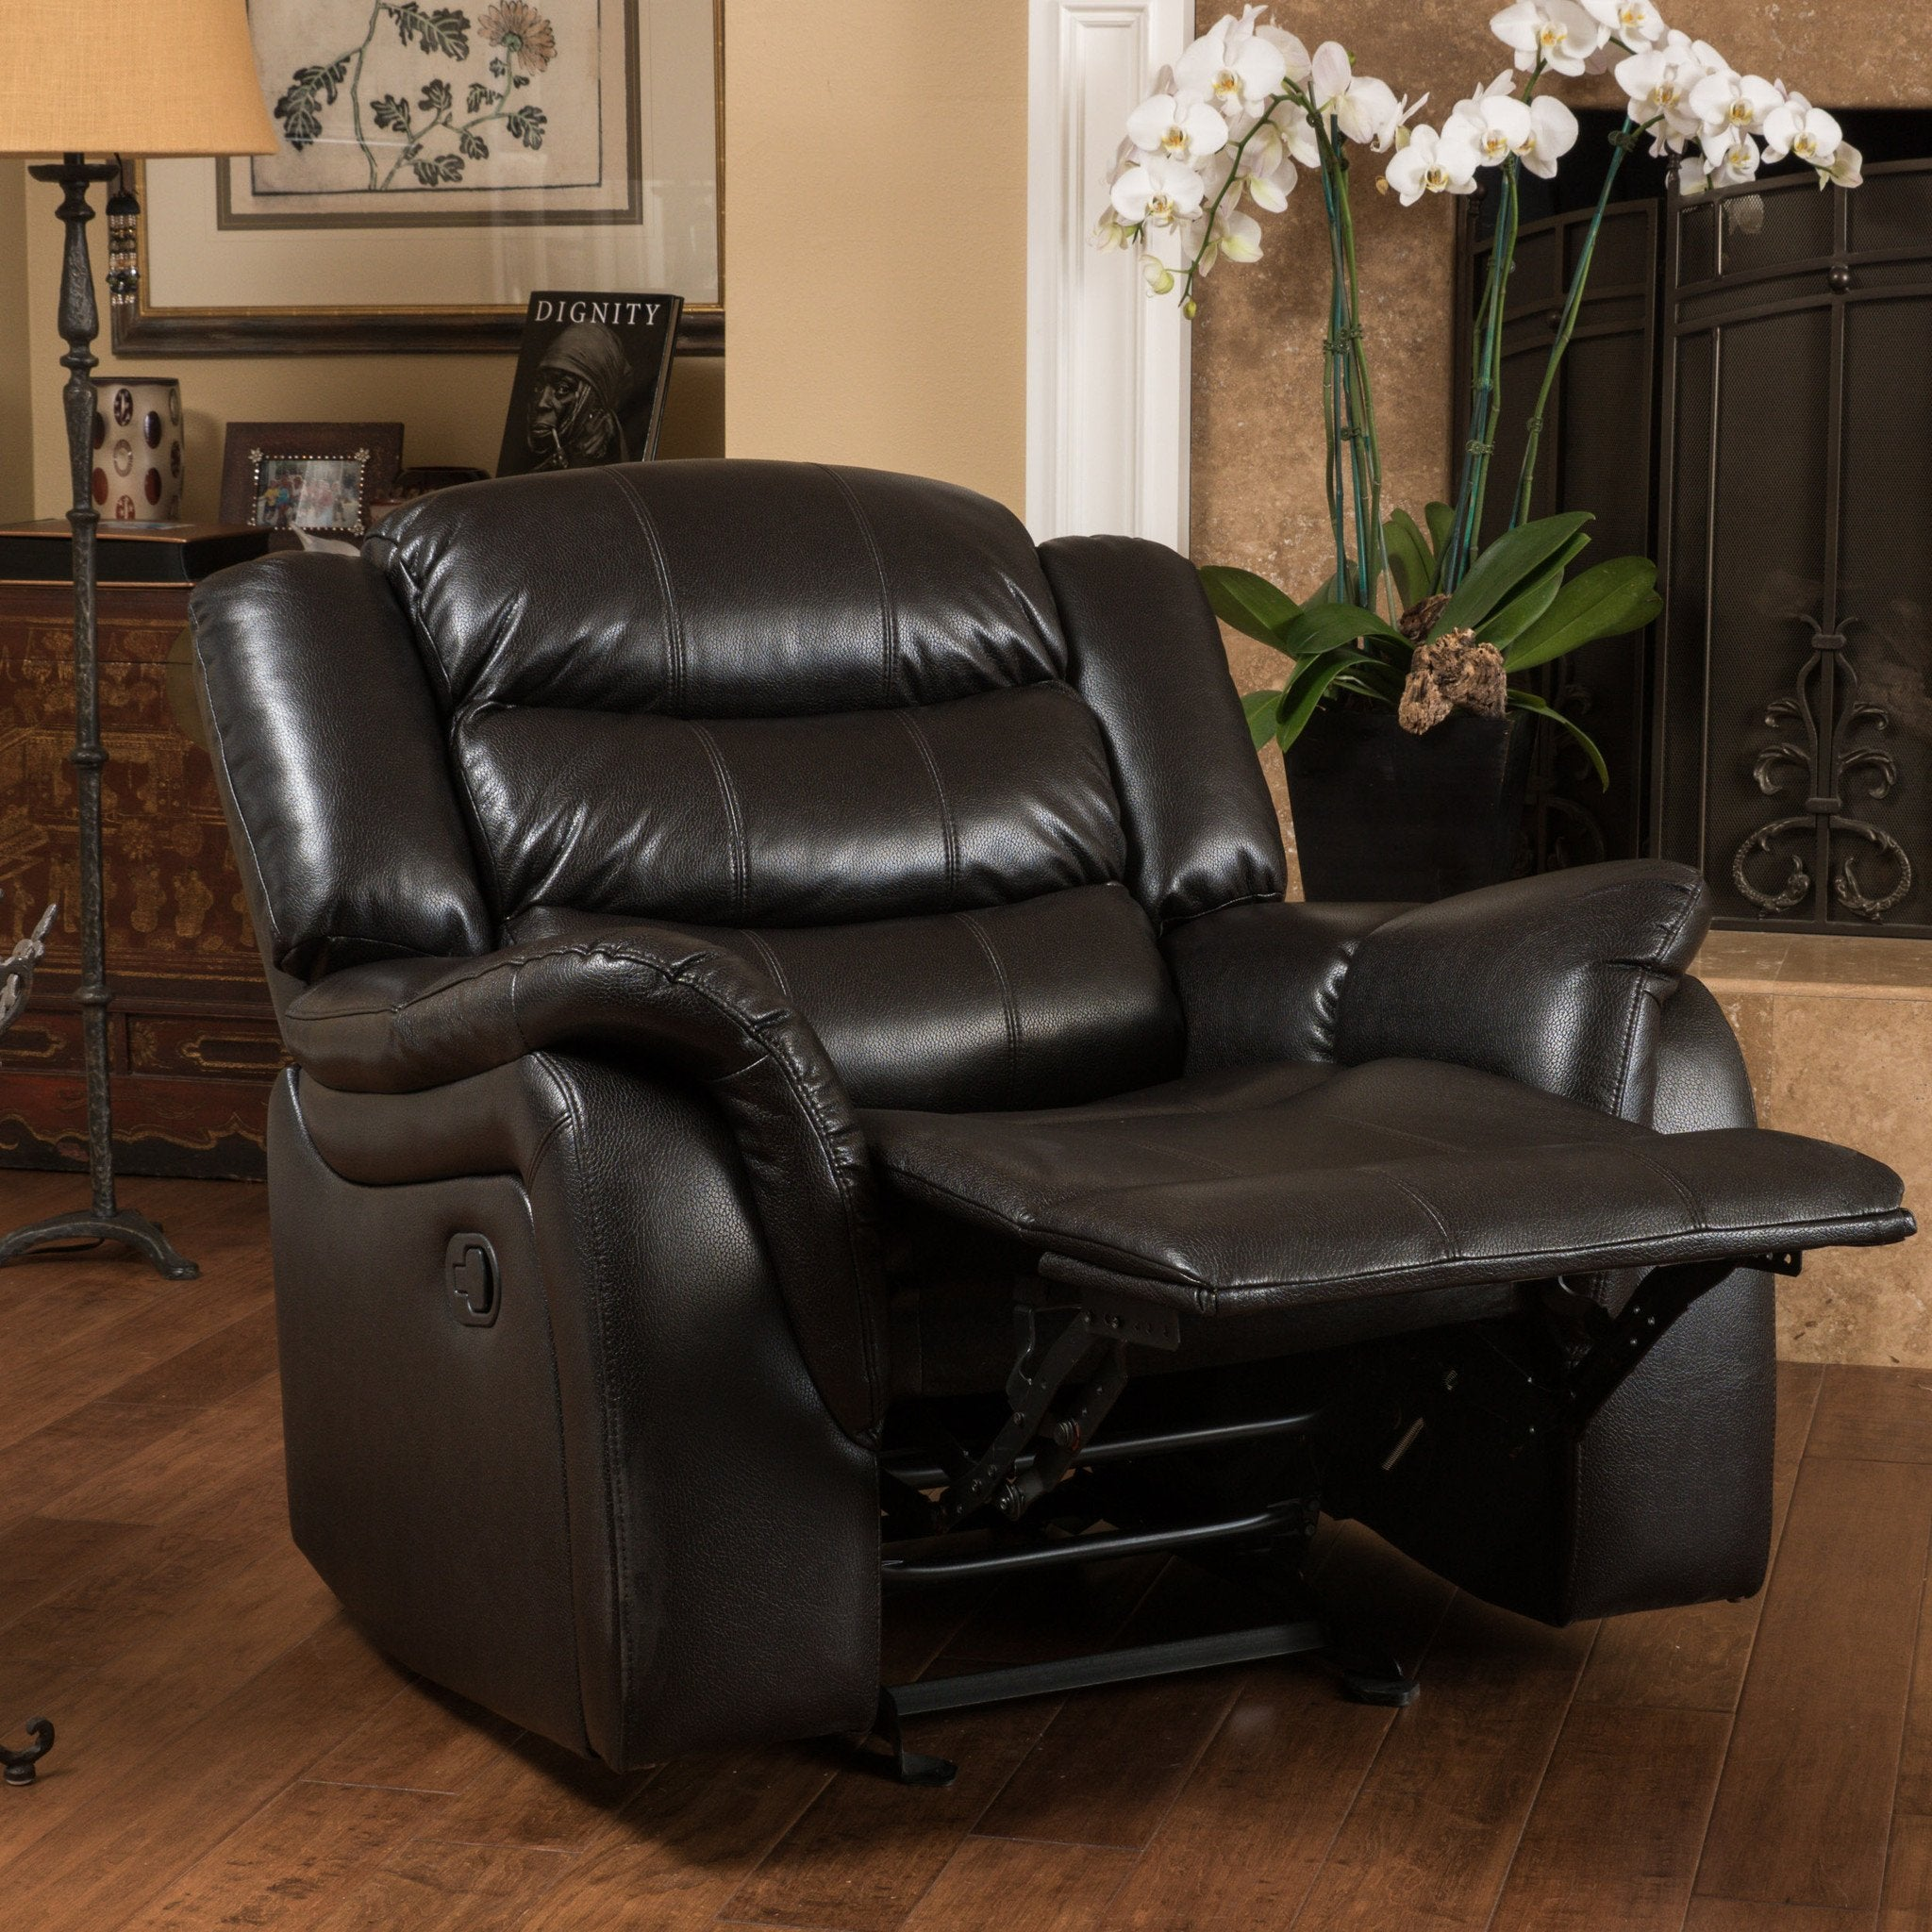 Haven Leather Recliner/Glider Chair